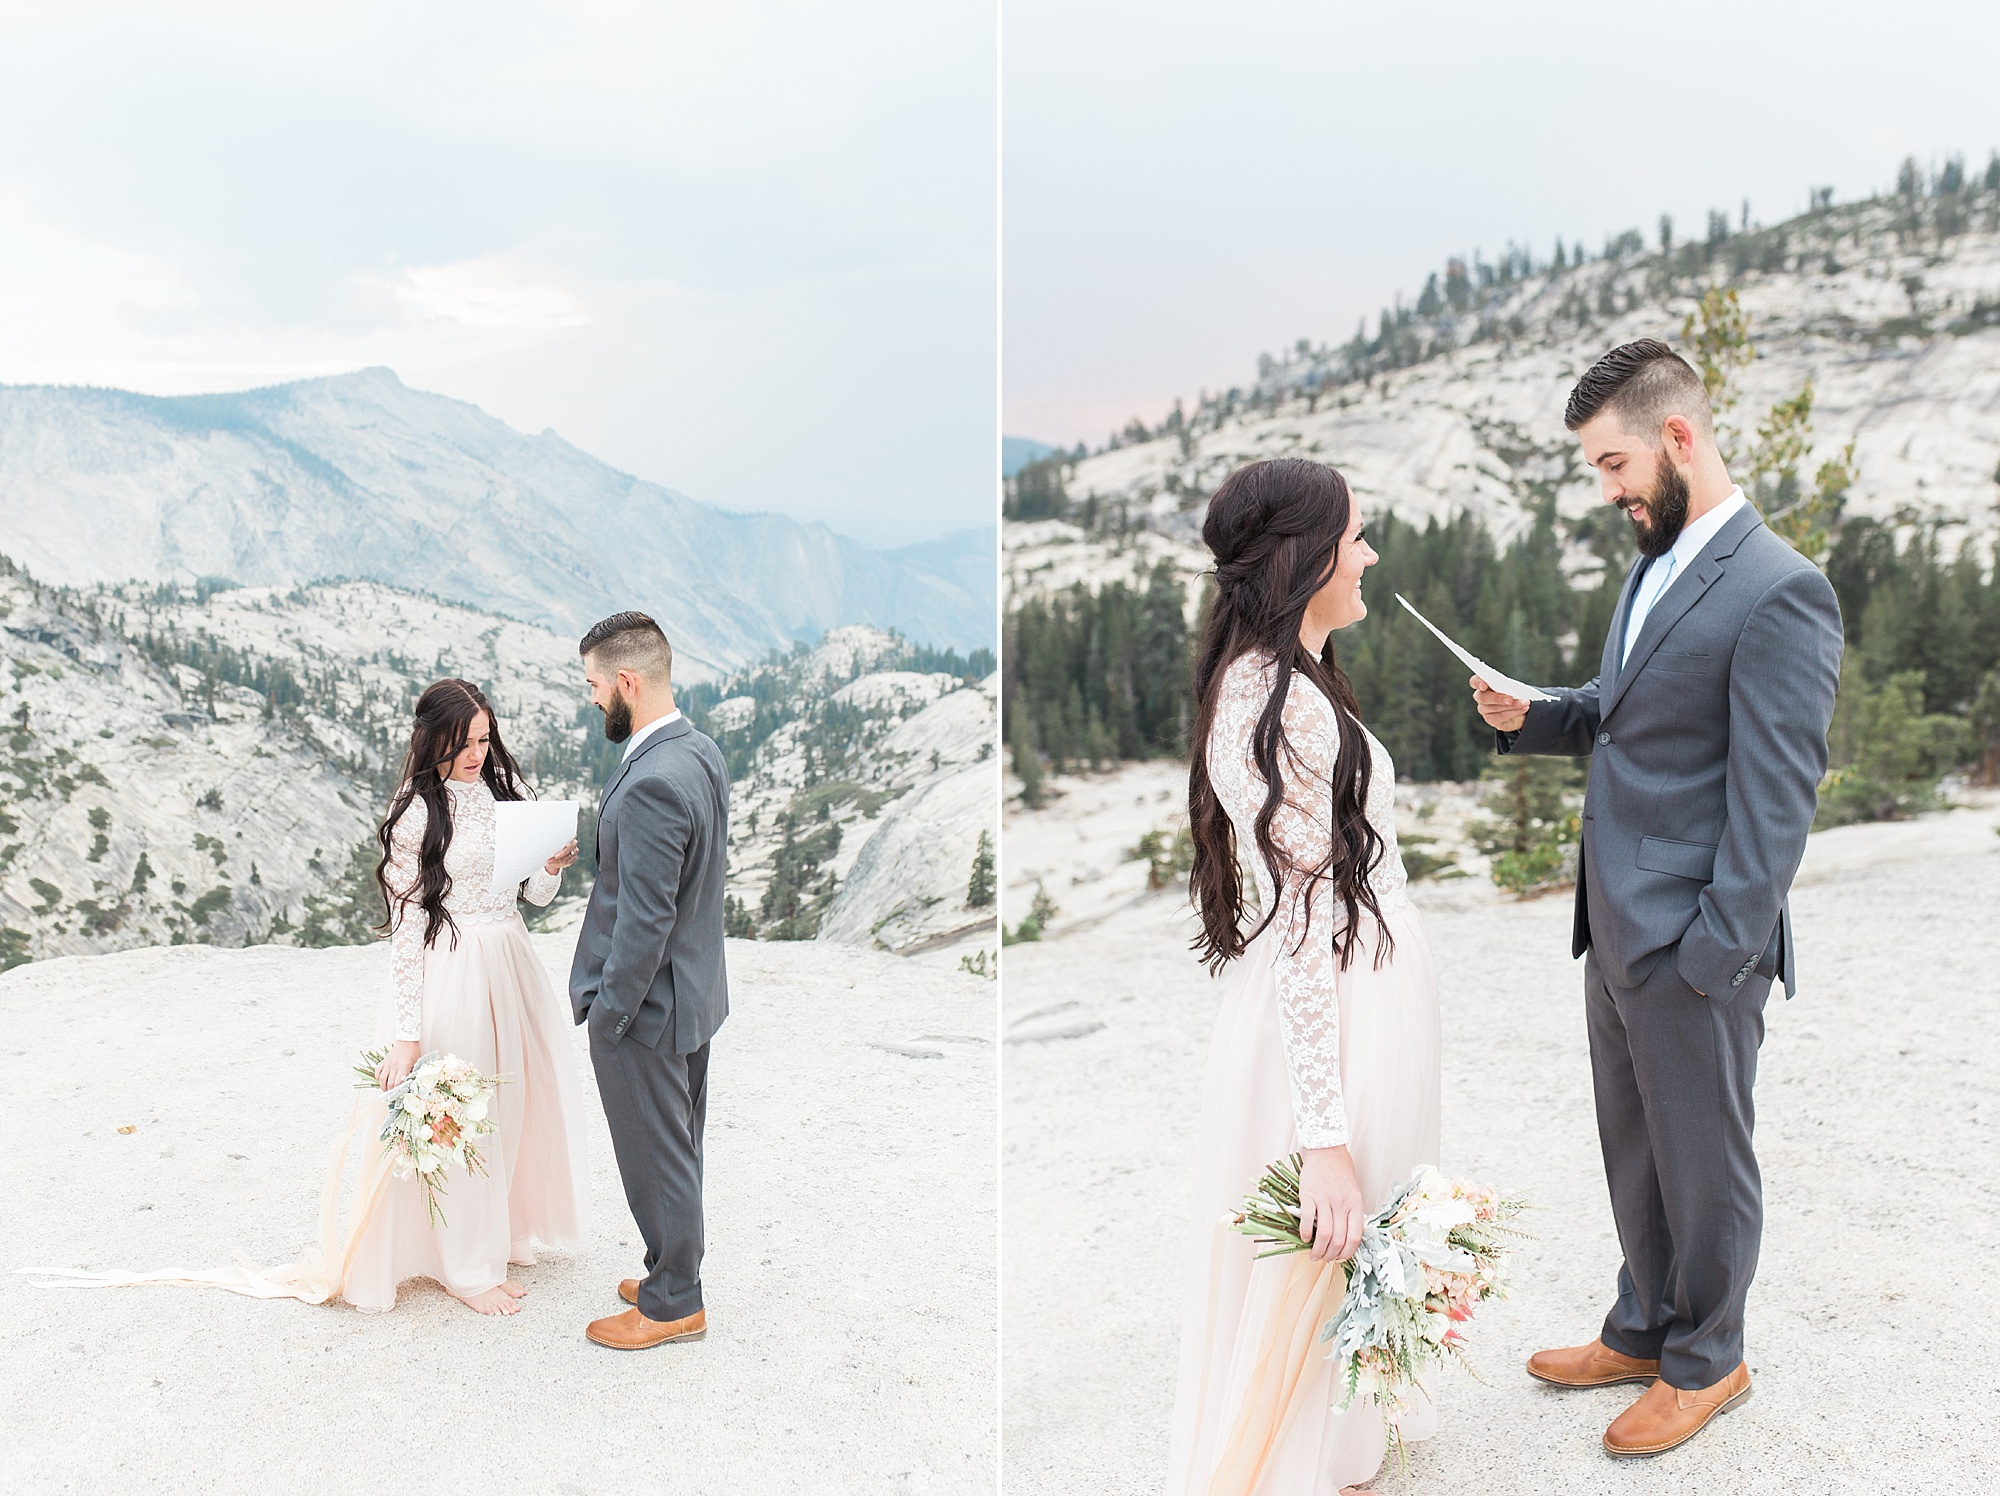 Ashley Baumgartner Photography & Calligraphy Yosemite Vow Renewal featured on 100 Layer Cake_0004.jpg